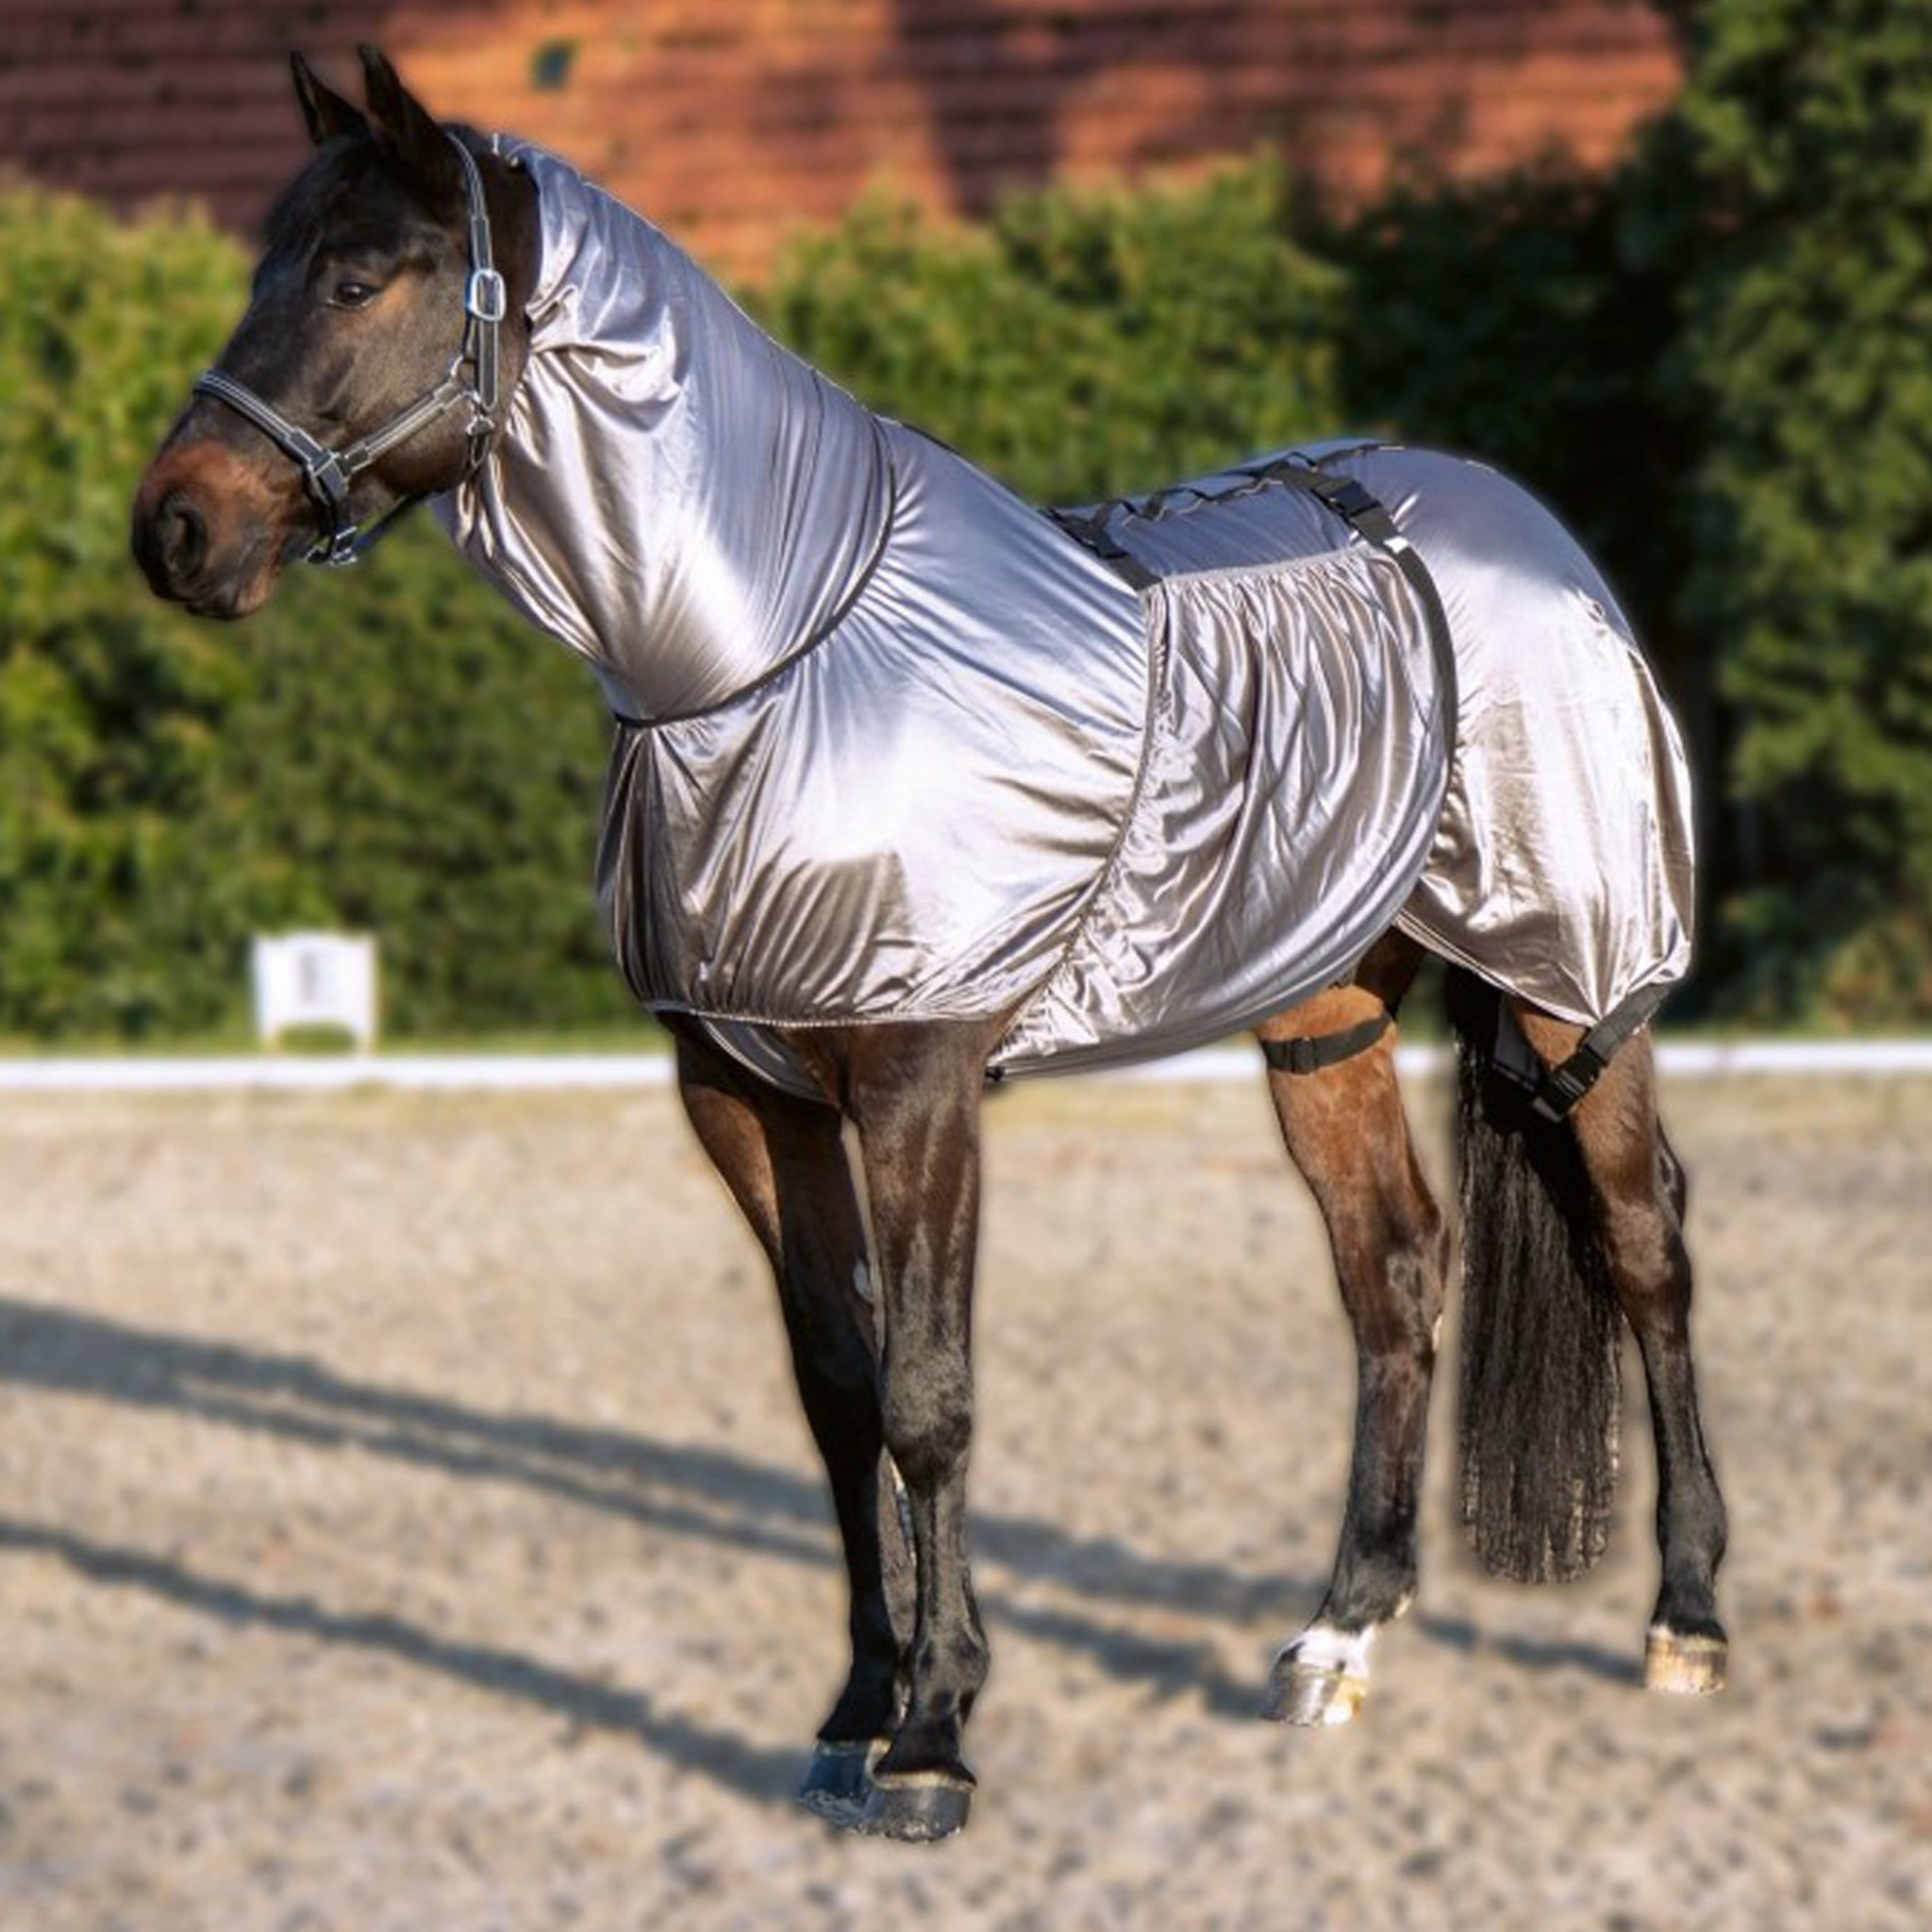 HKM Security Eczema Combo Fly Rug 7045 On Horse In School